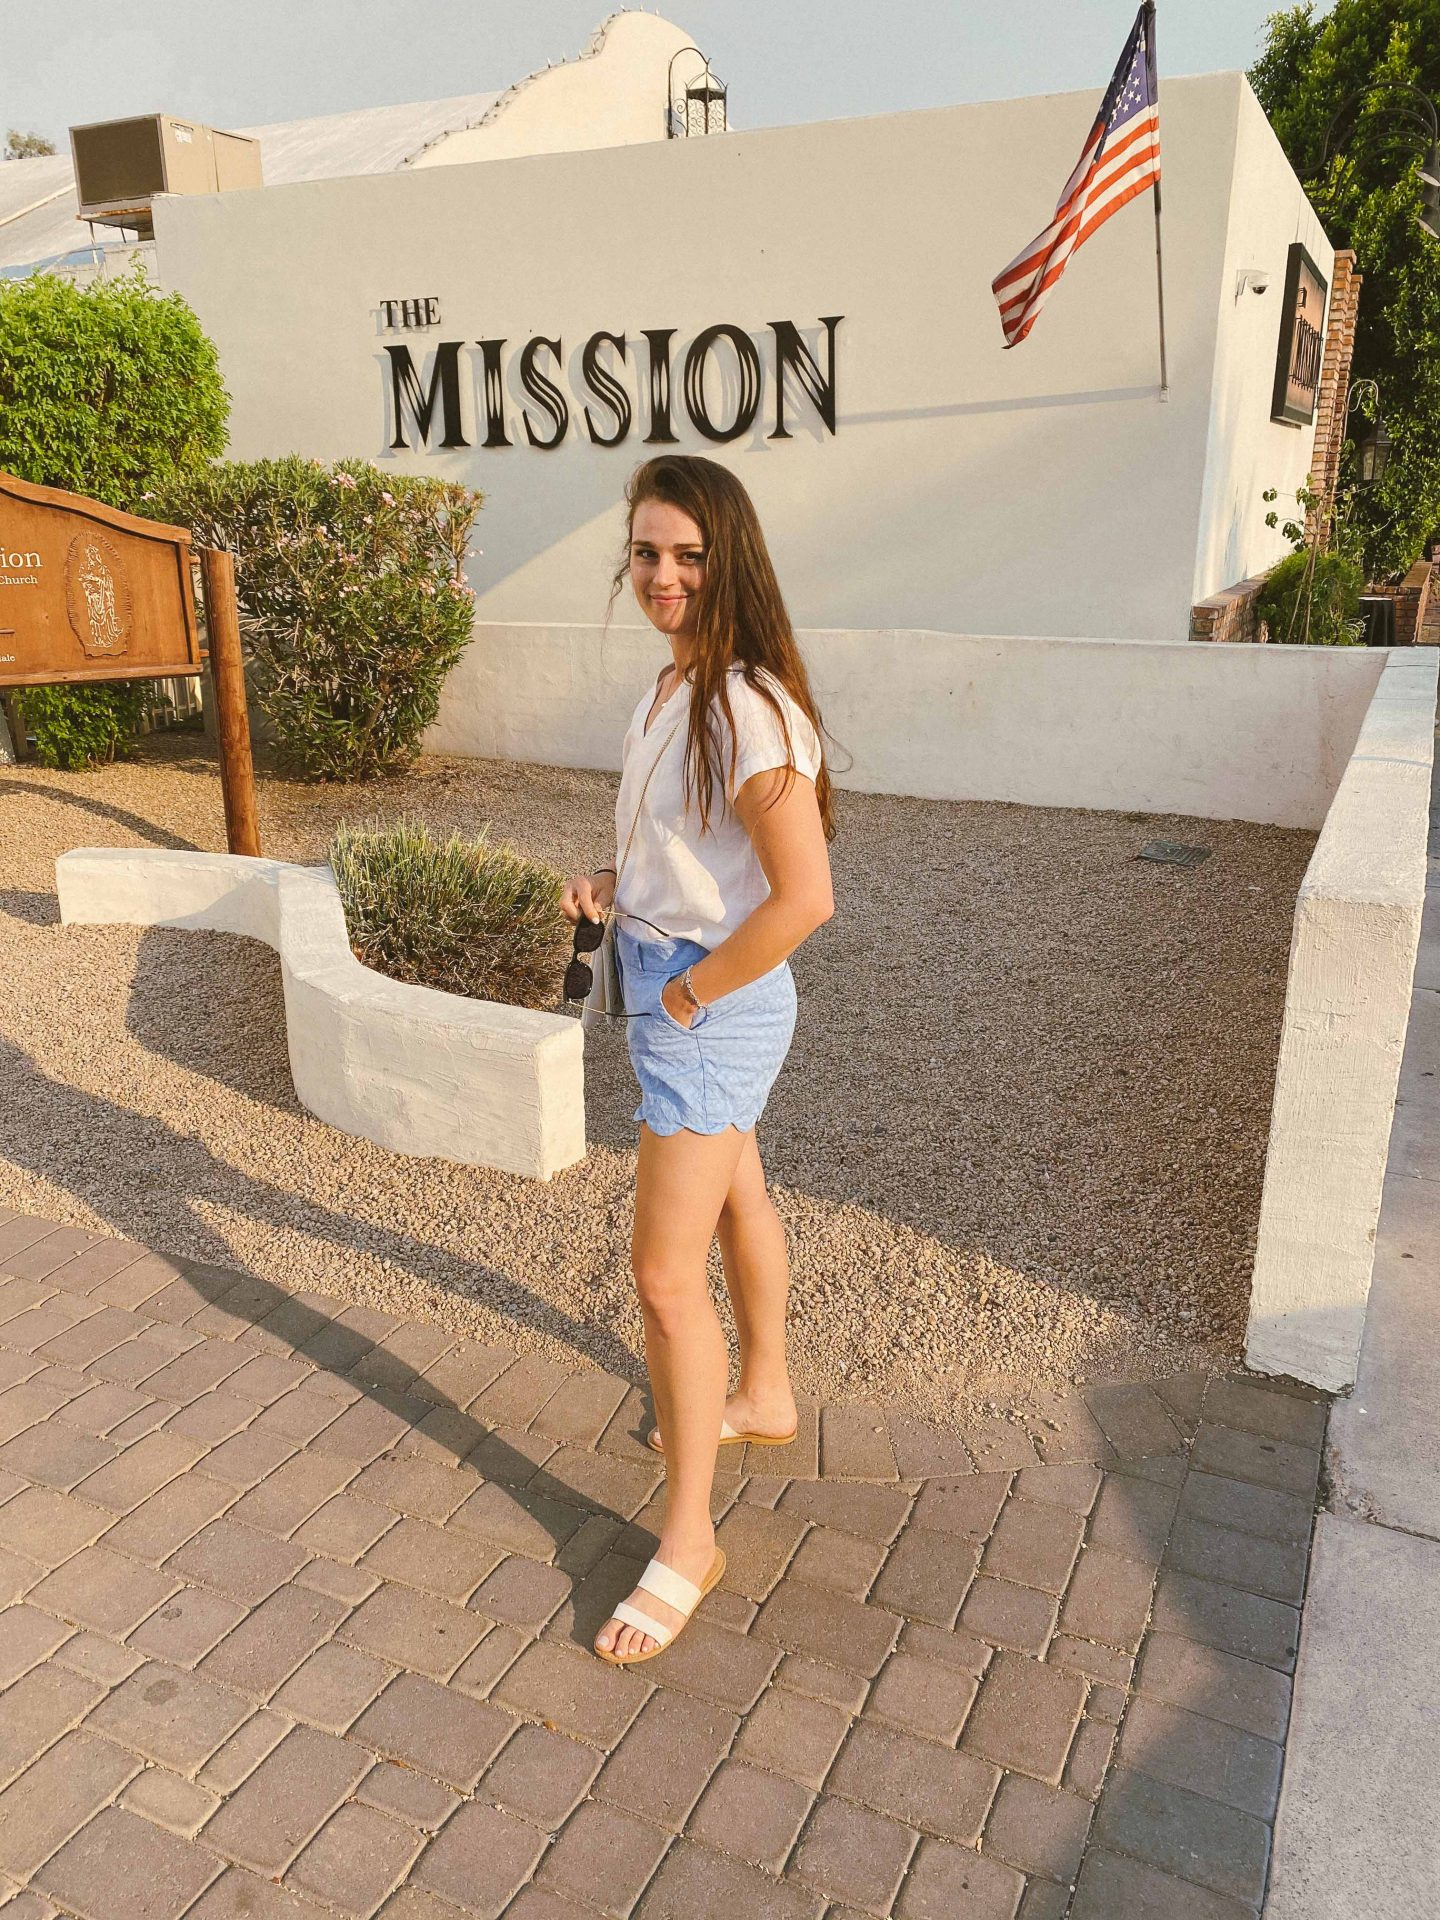 The Mission Old Town Scottsdale Arizona, scottsdale, best places to eat, travel guide scottsdale Arizona, what to eat in scottsdale, Mexican restaurants, best food in old town scottsdale, kale salad, spicy margarita, best Mexican food in scottsdale